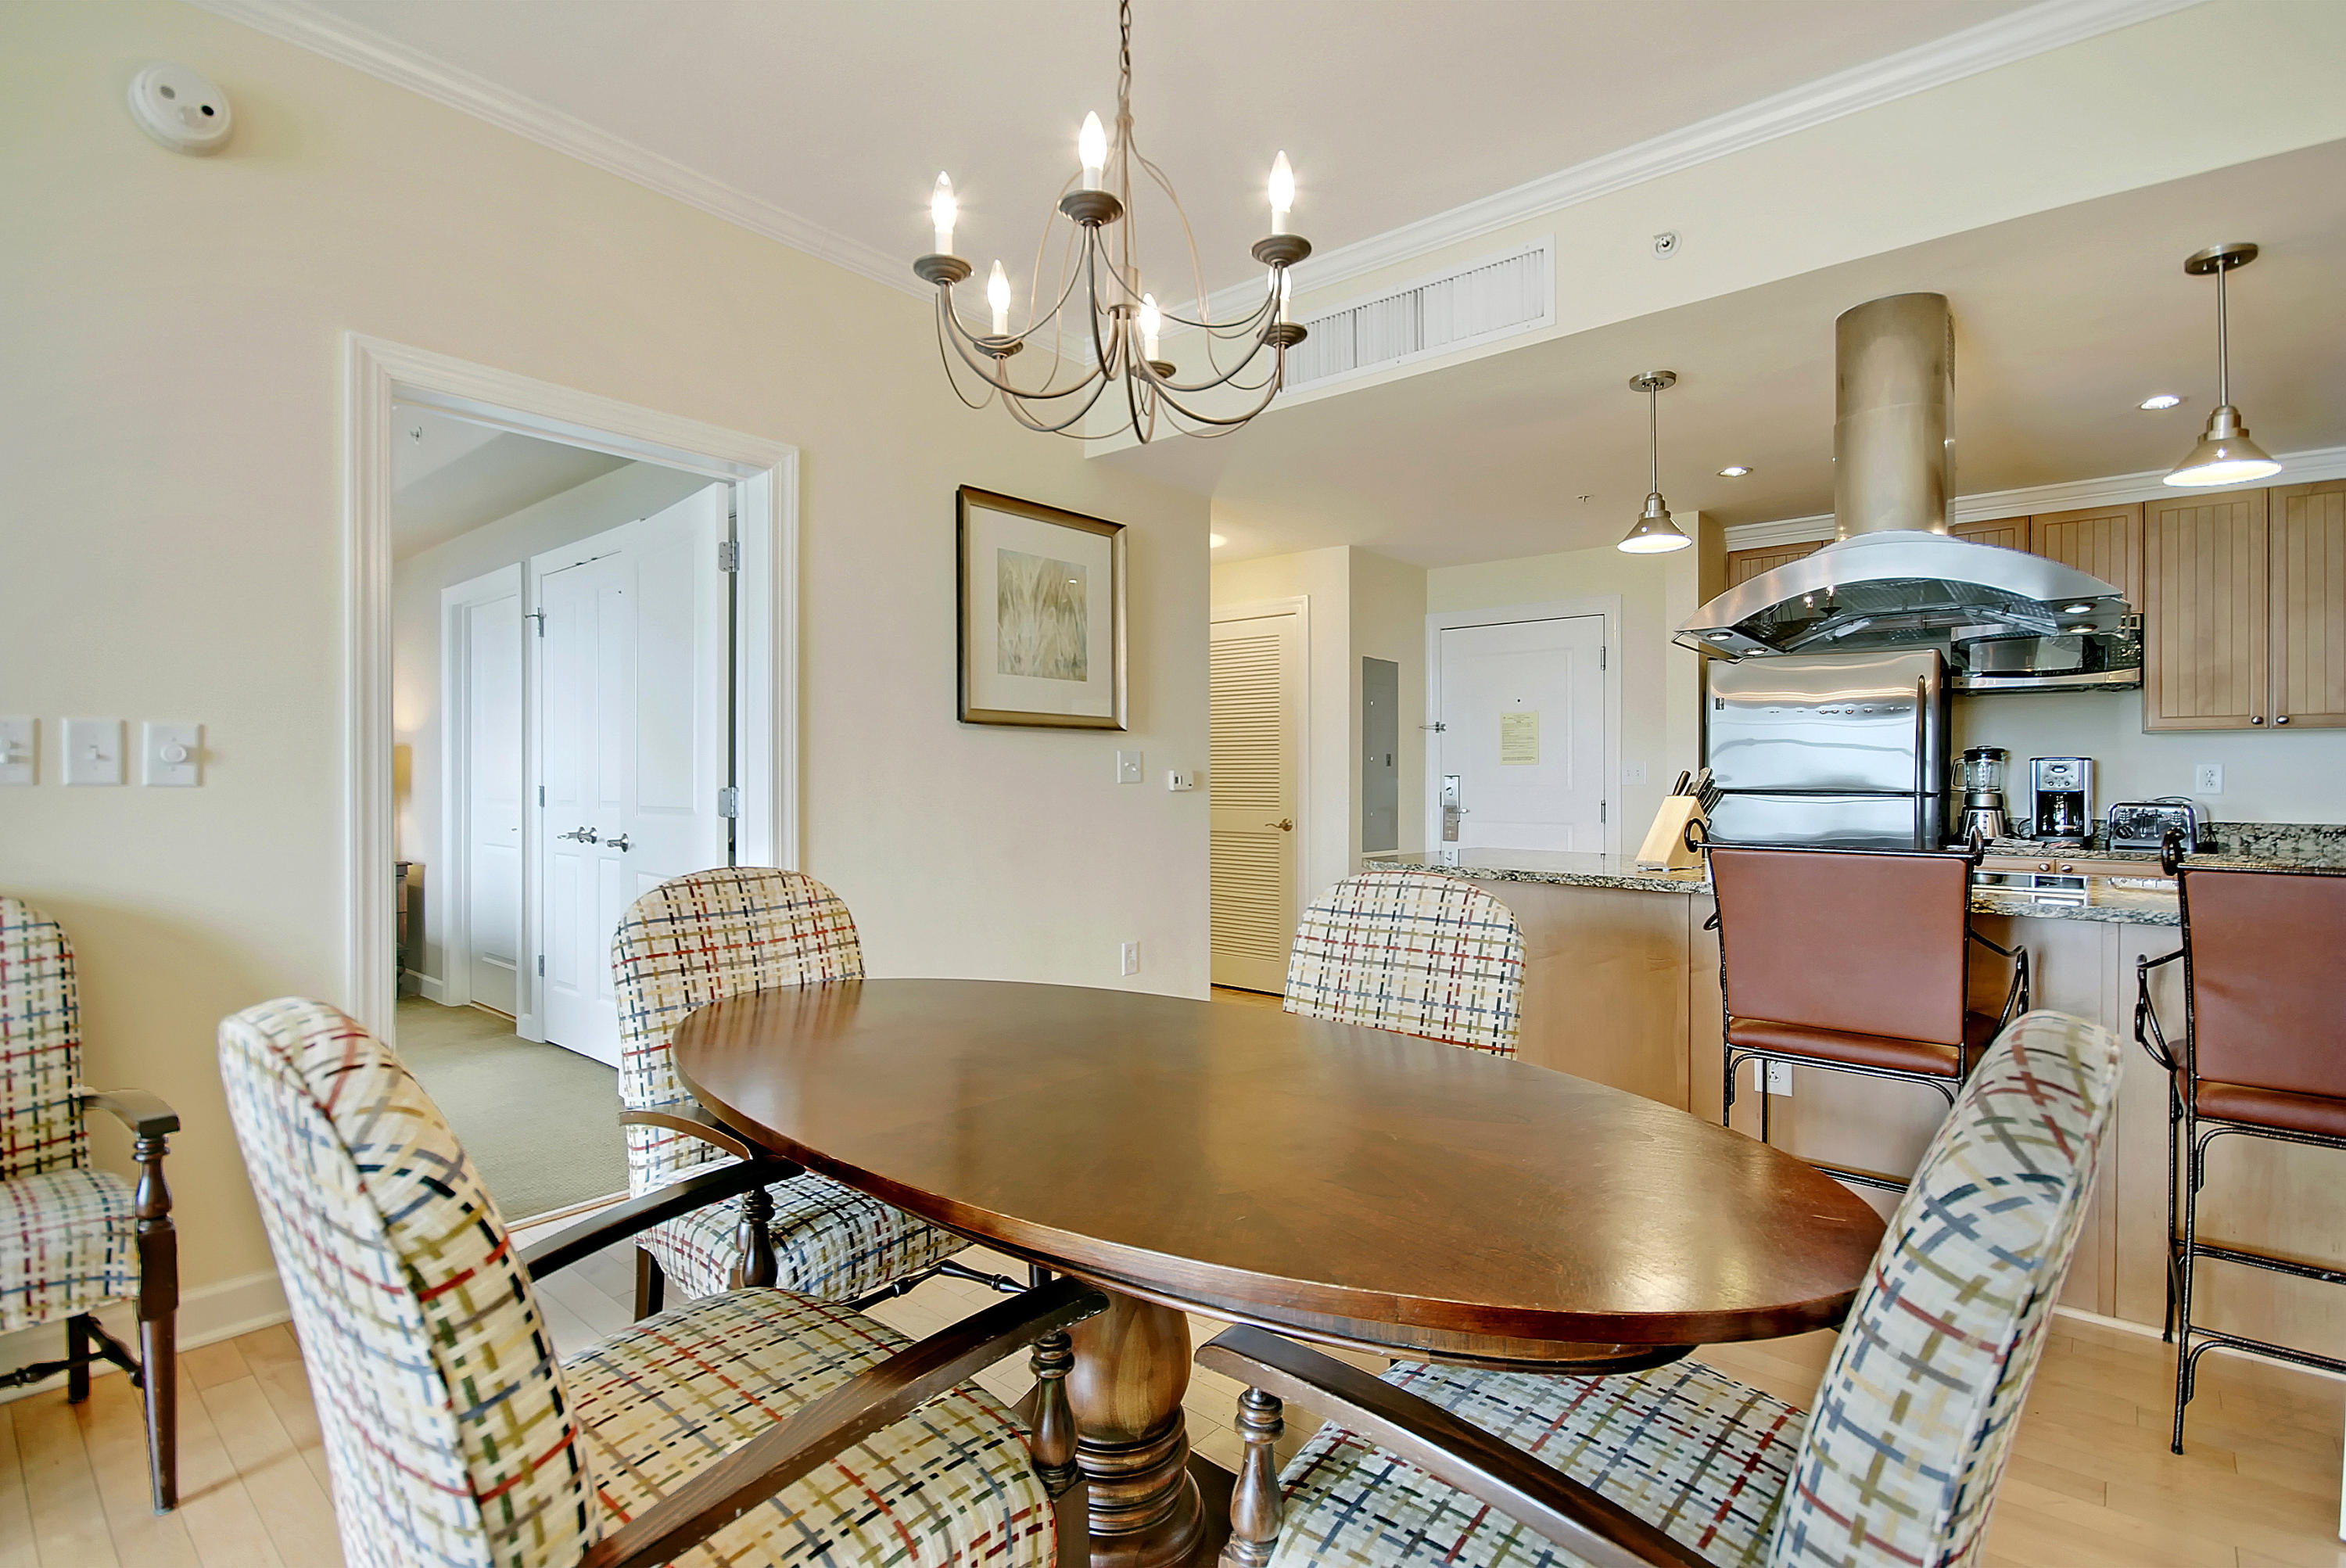 Wild Dunes Homes For Sale - 415/417-B The Village At Wild Dunes, Isle of Palms, SC - 11